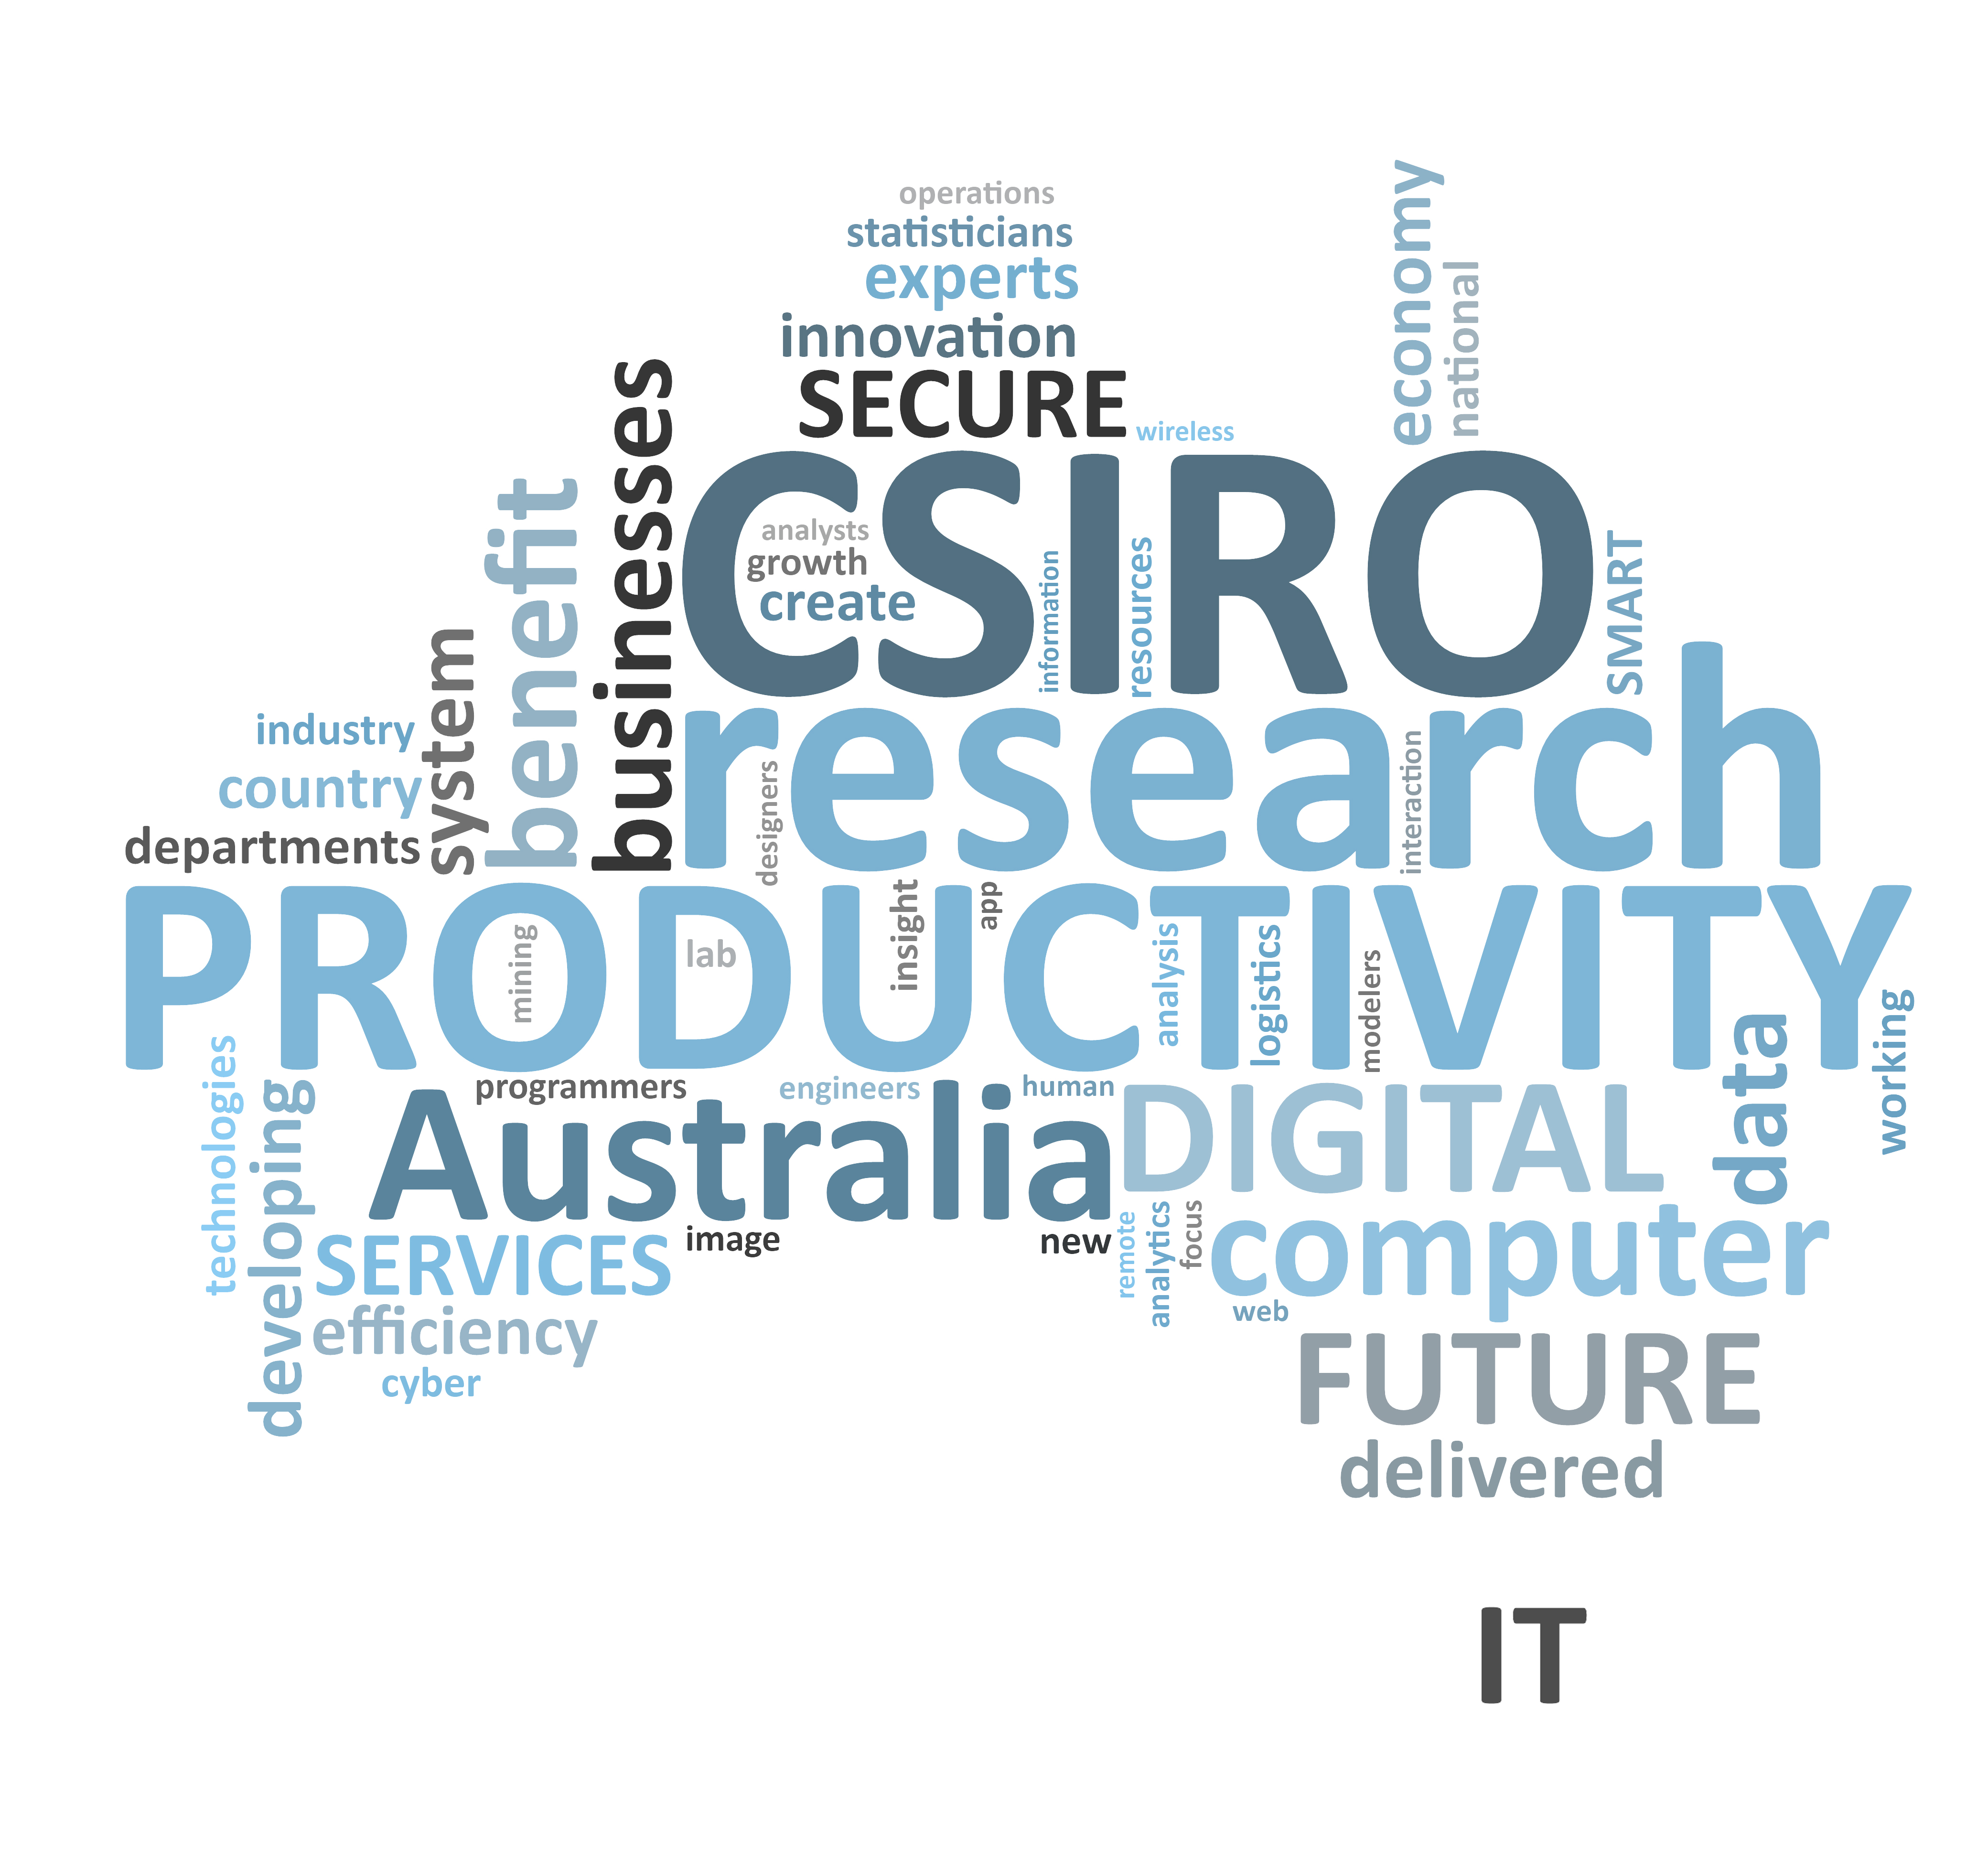 Word cloud of CSIRO's Digital Productivity and Services Flagship in the shape of Austraia.